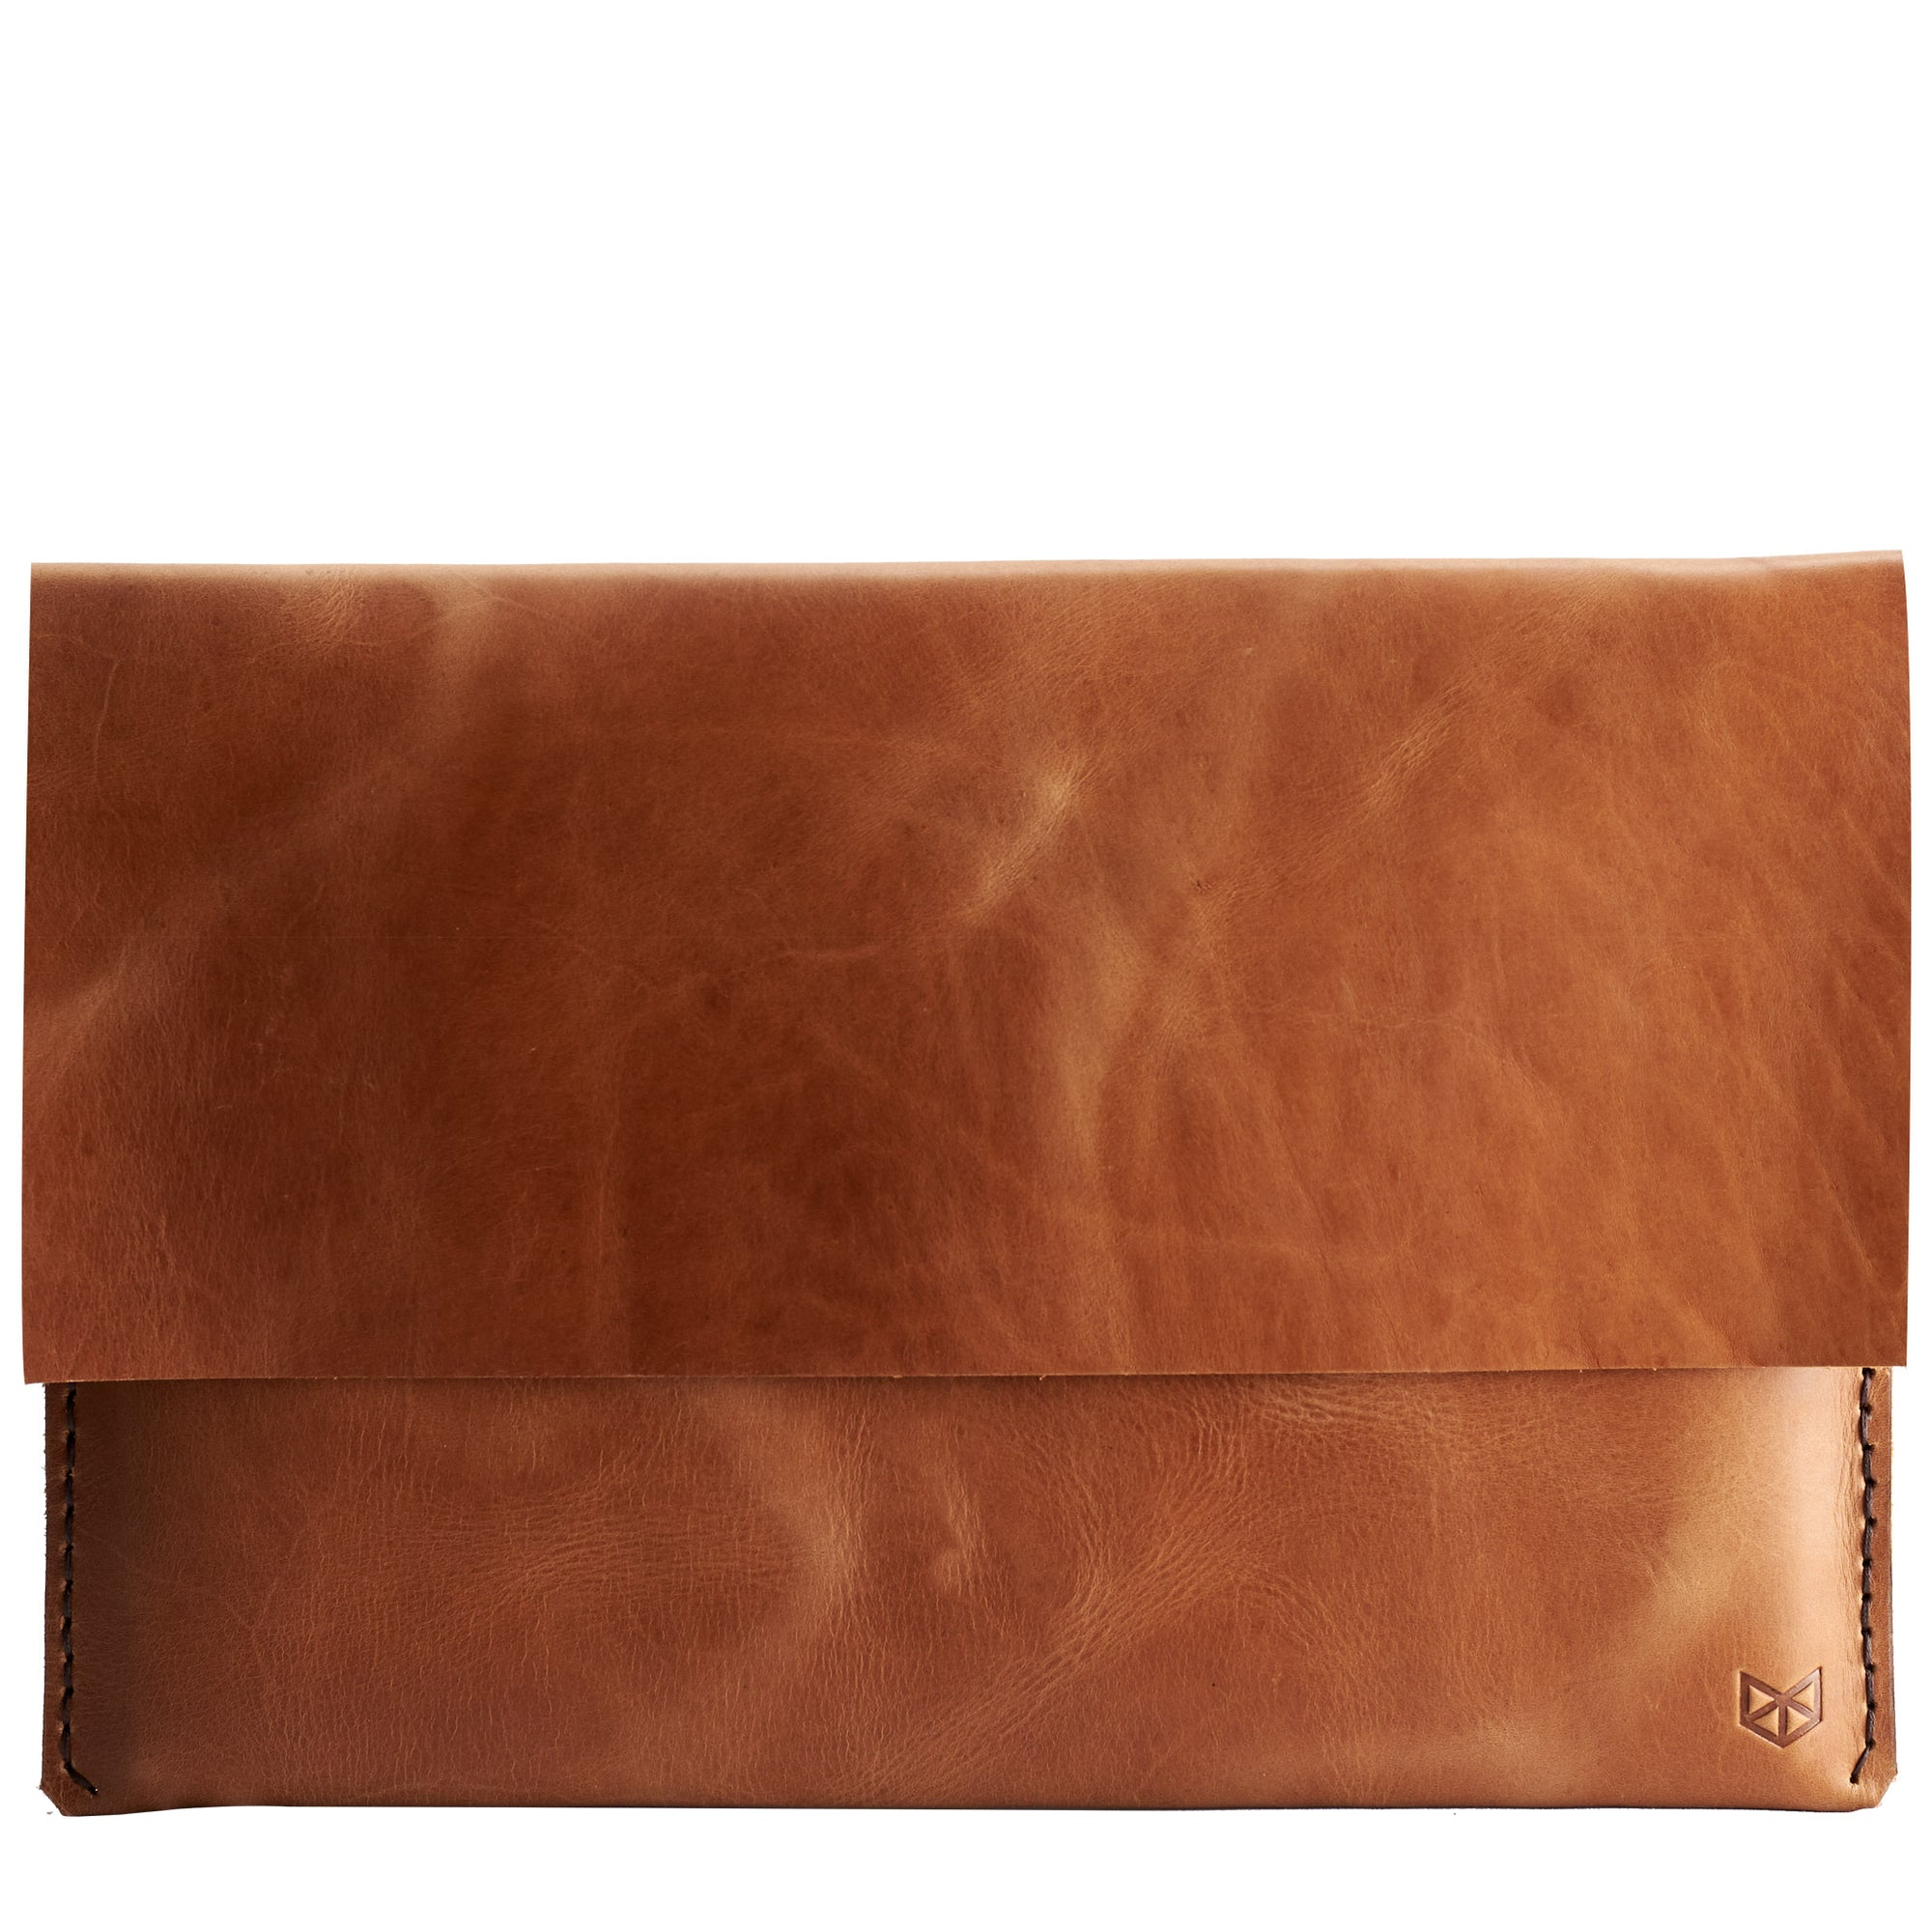 Leather Lenovo Yoga Sleeve Case by Capra Leather